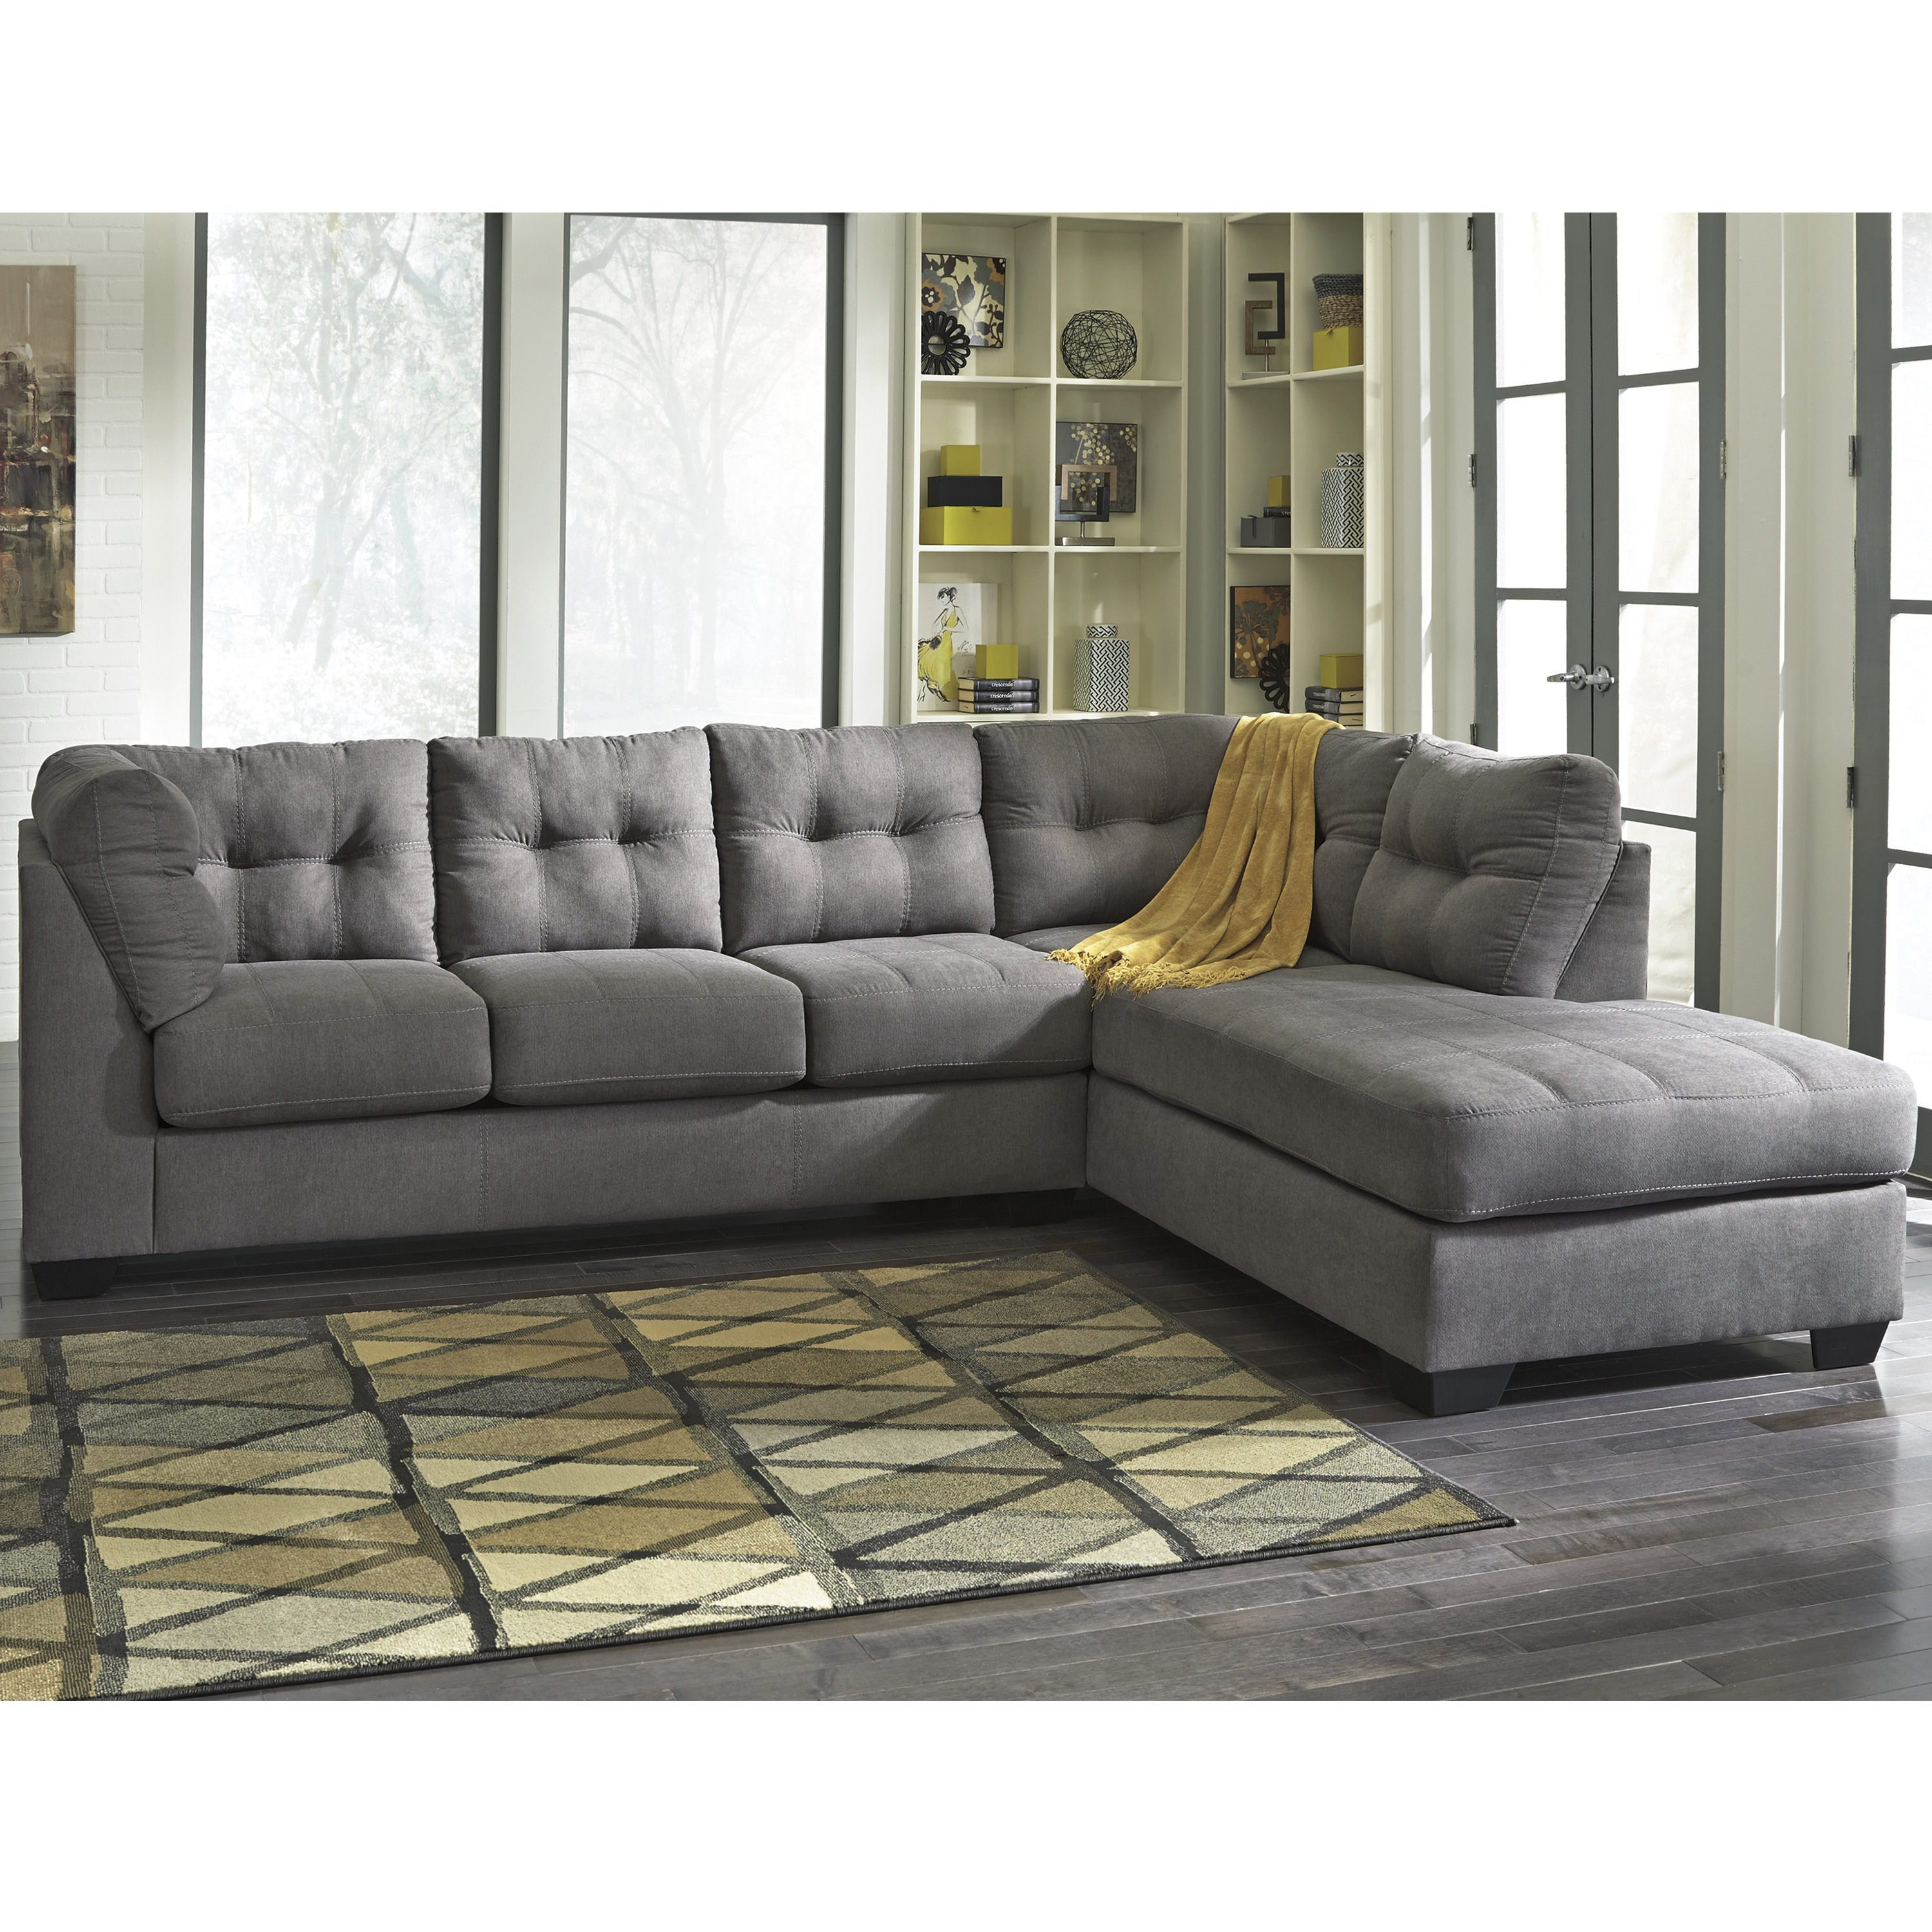 Shop Clay Alder Home Wells Microfiber Sectional With Left Side With Regard To Well Liked Alder 4 Piece Sectionals (View 11 of 20)